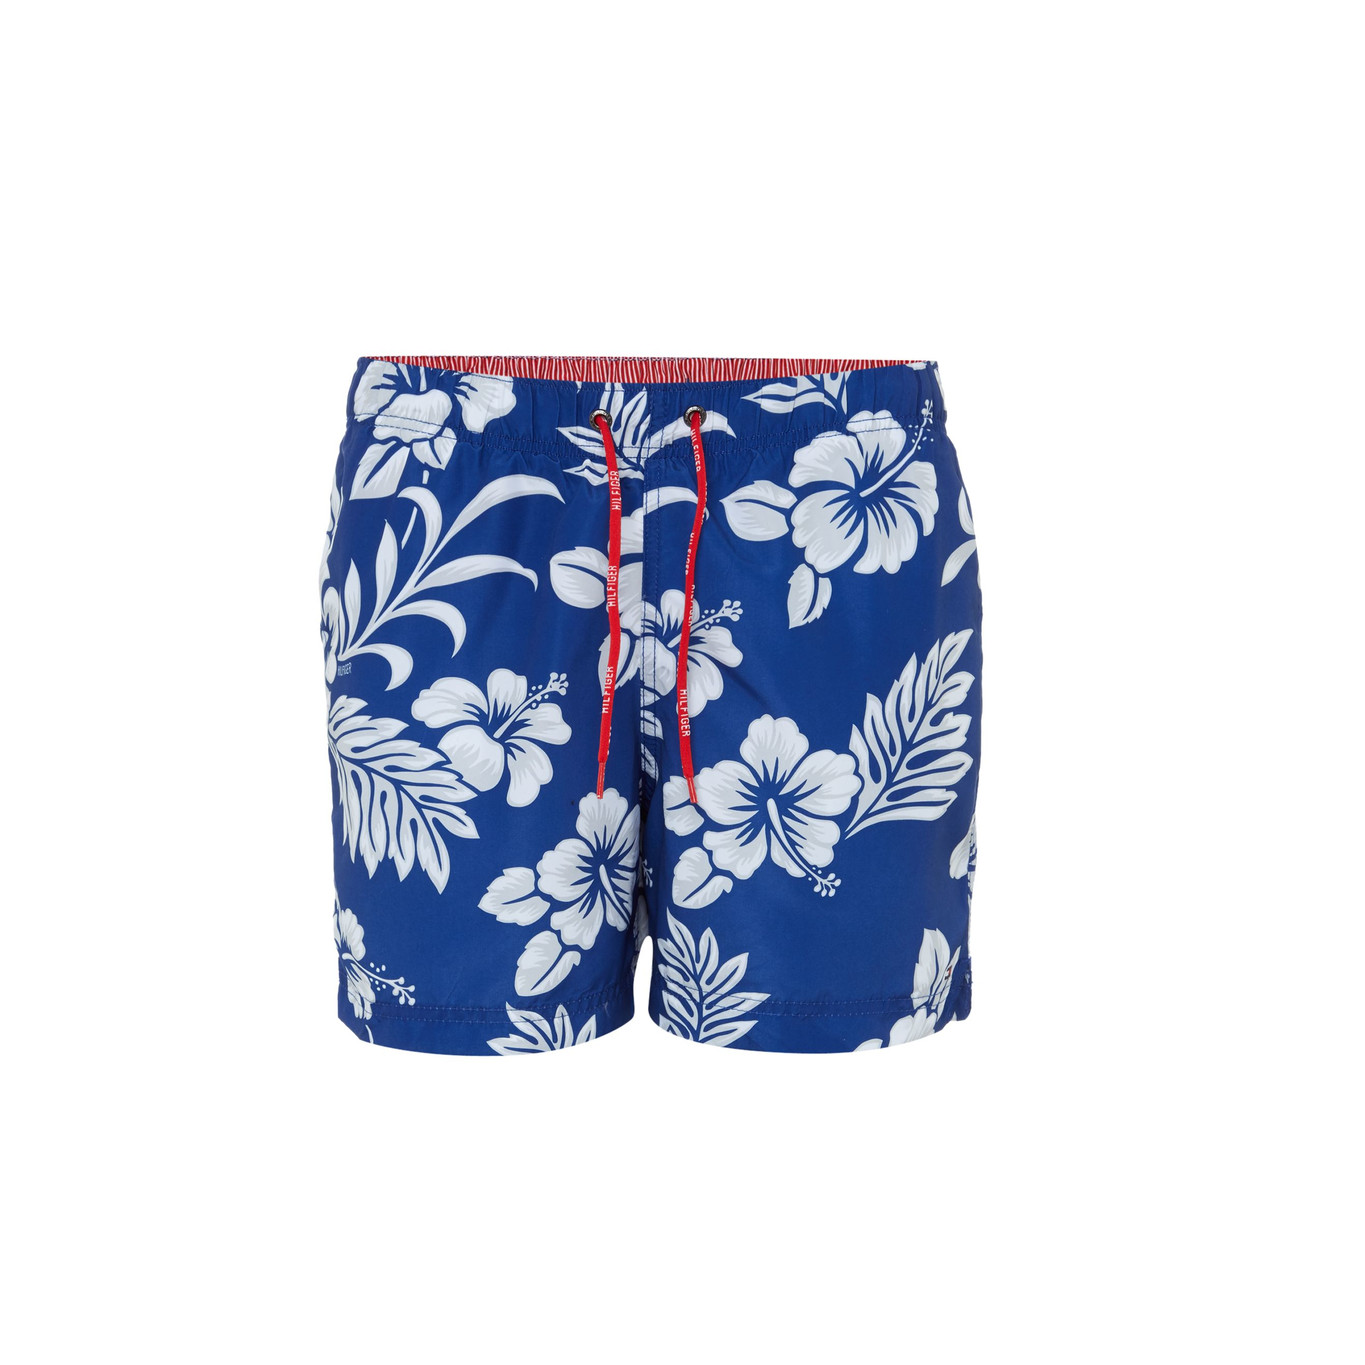 d525f2e09d Men's Tommy Hilfiger Clyde floral print swim shorts, Blue - Tommy Hilfiger  Near Me | NearSt Find and buy products from real shops near you